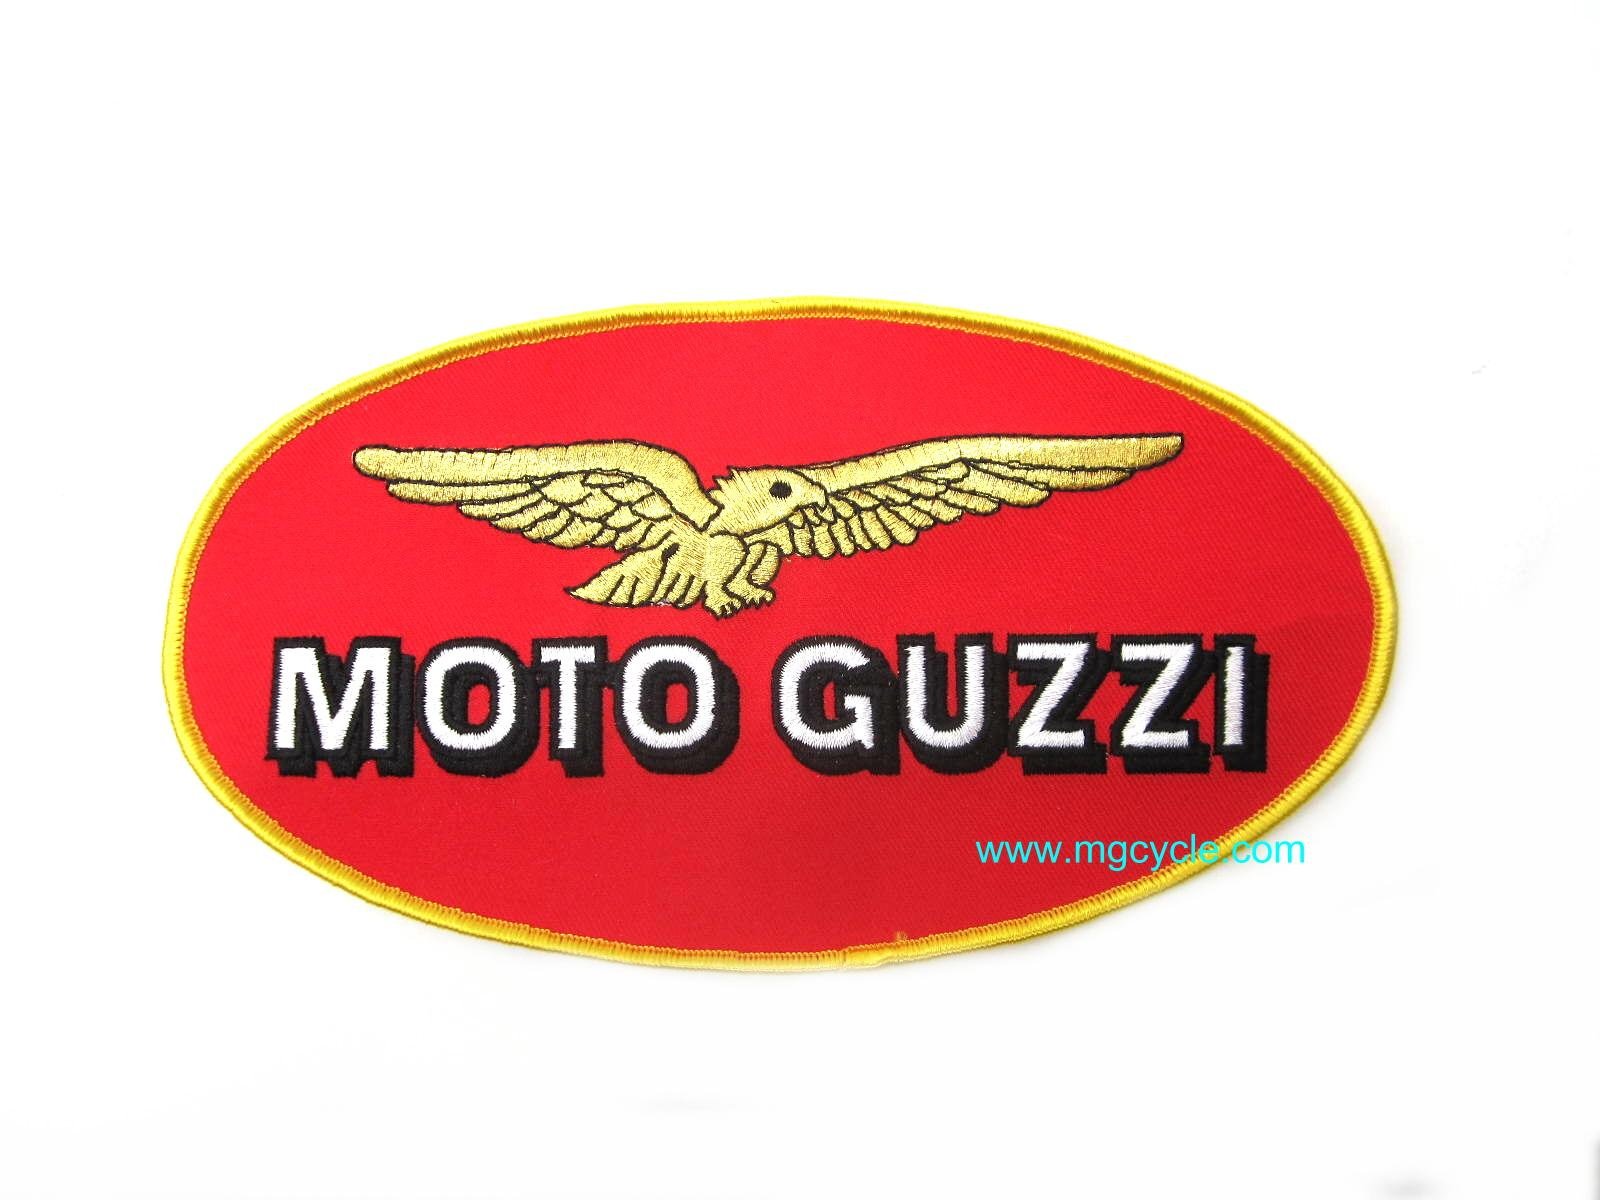 large oval patch, Moto Guzzi, oval red and gold, 4x8